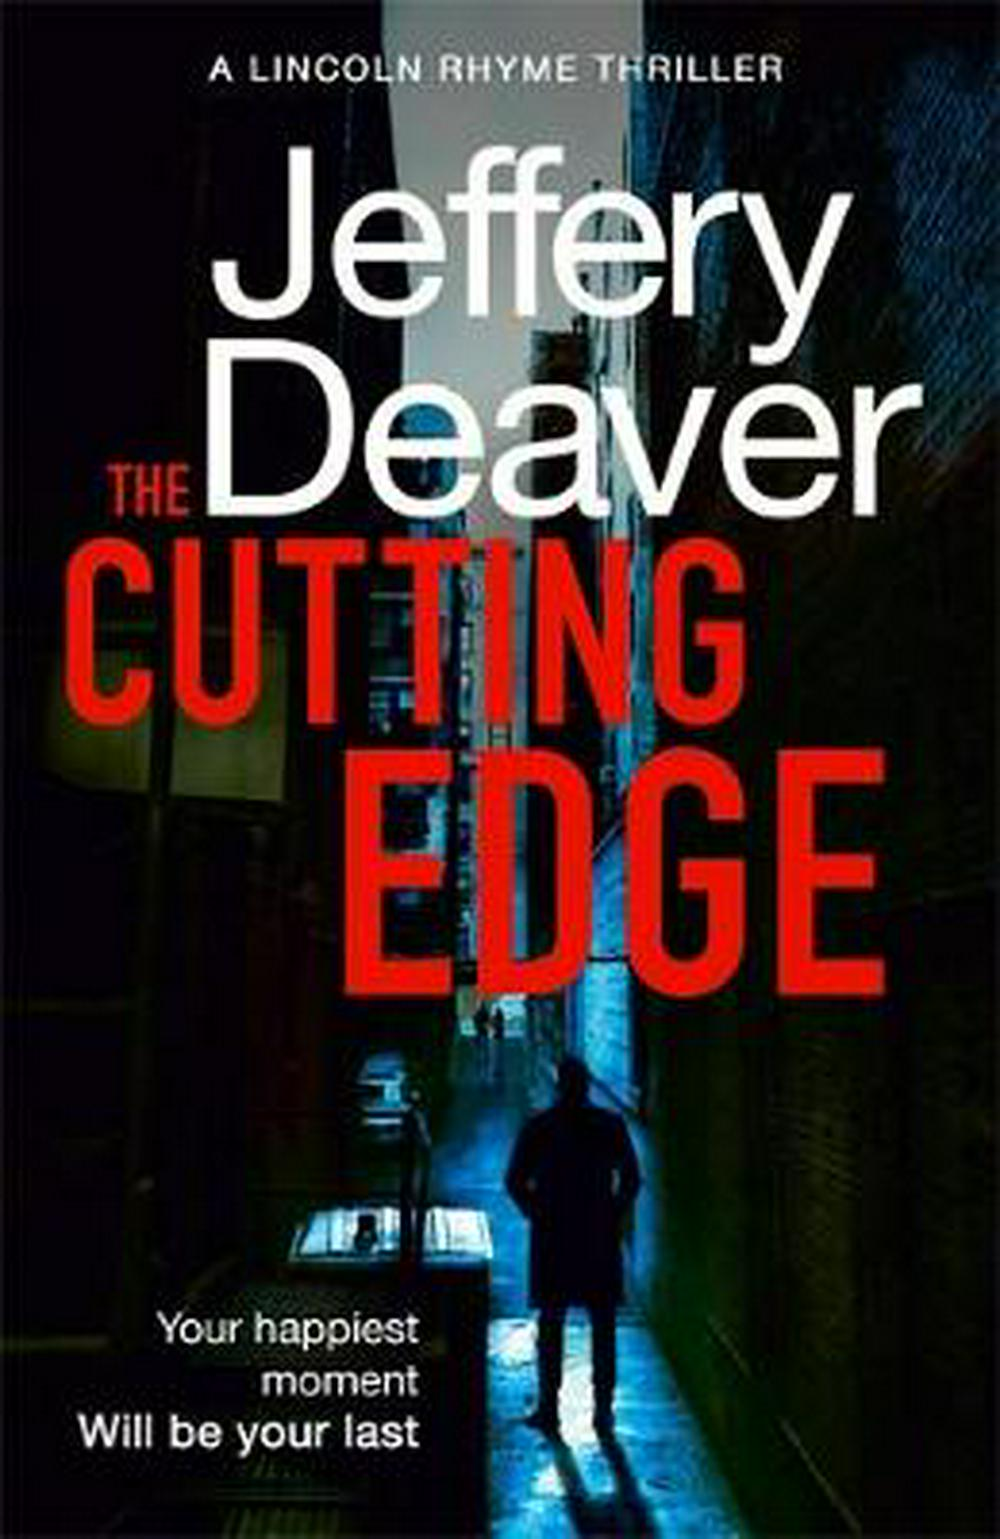 The Cutting EdgeLincoln Rhyme Thrillers